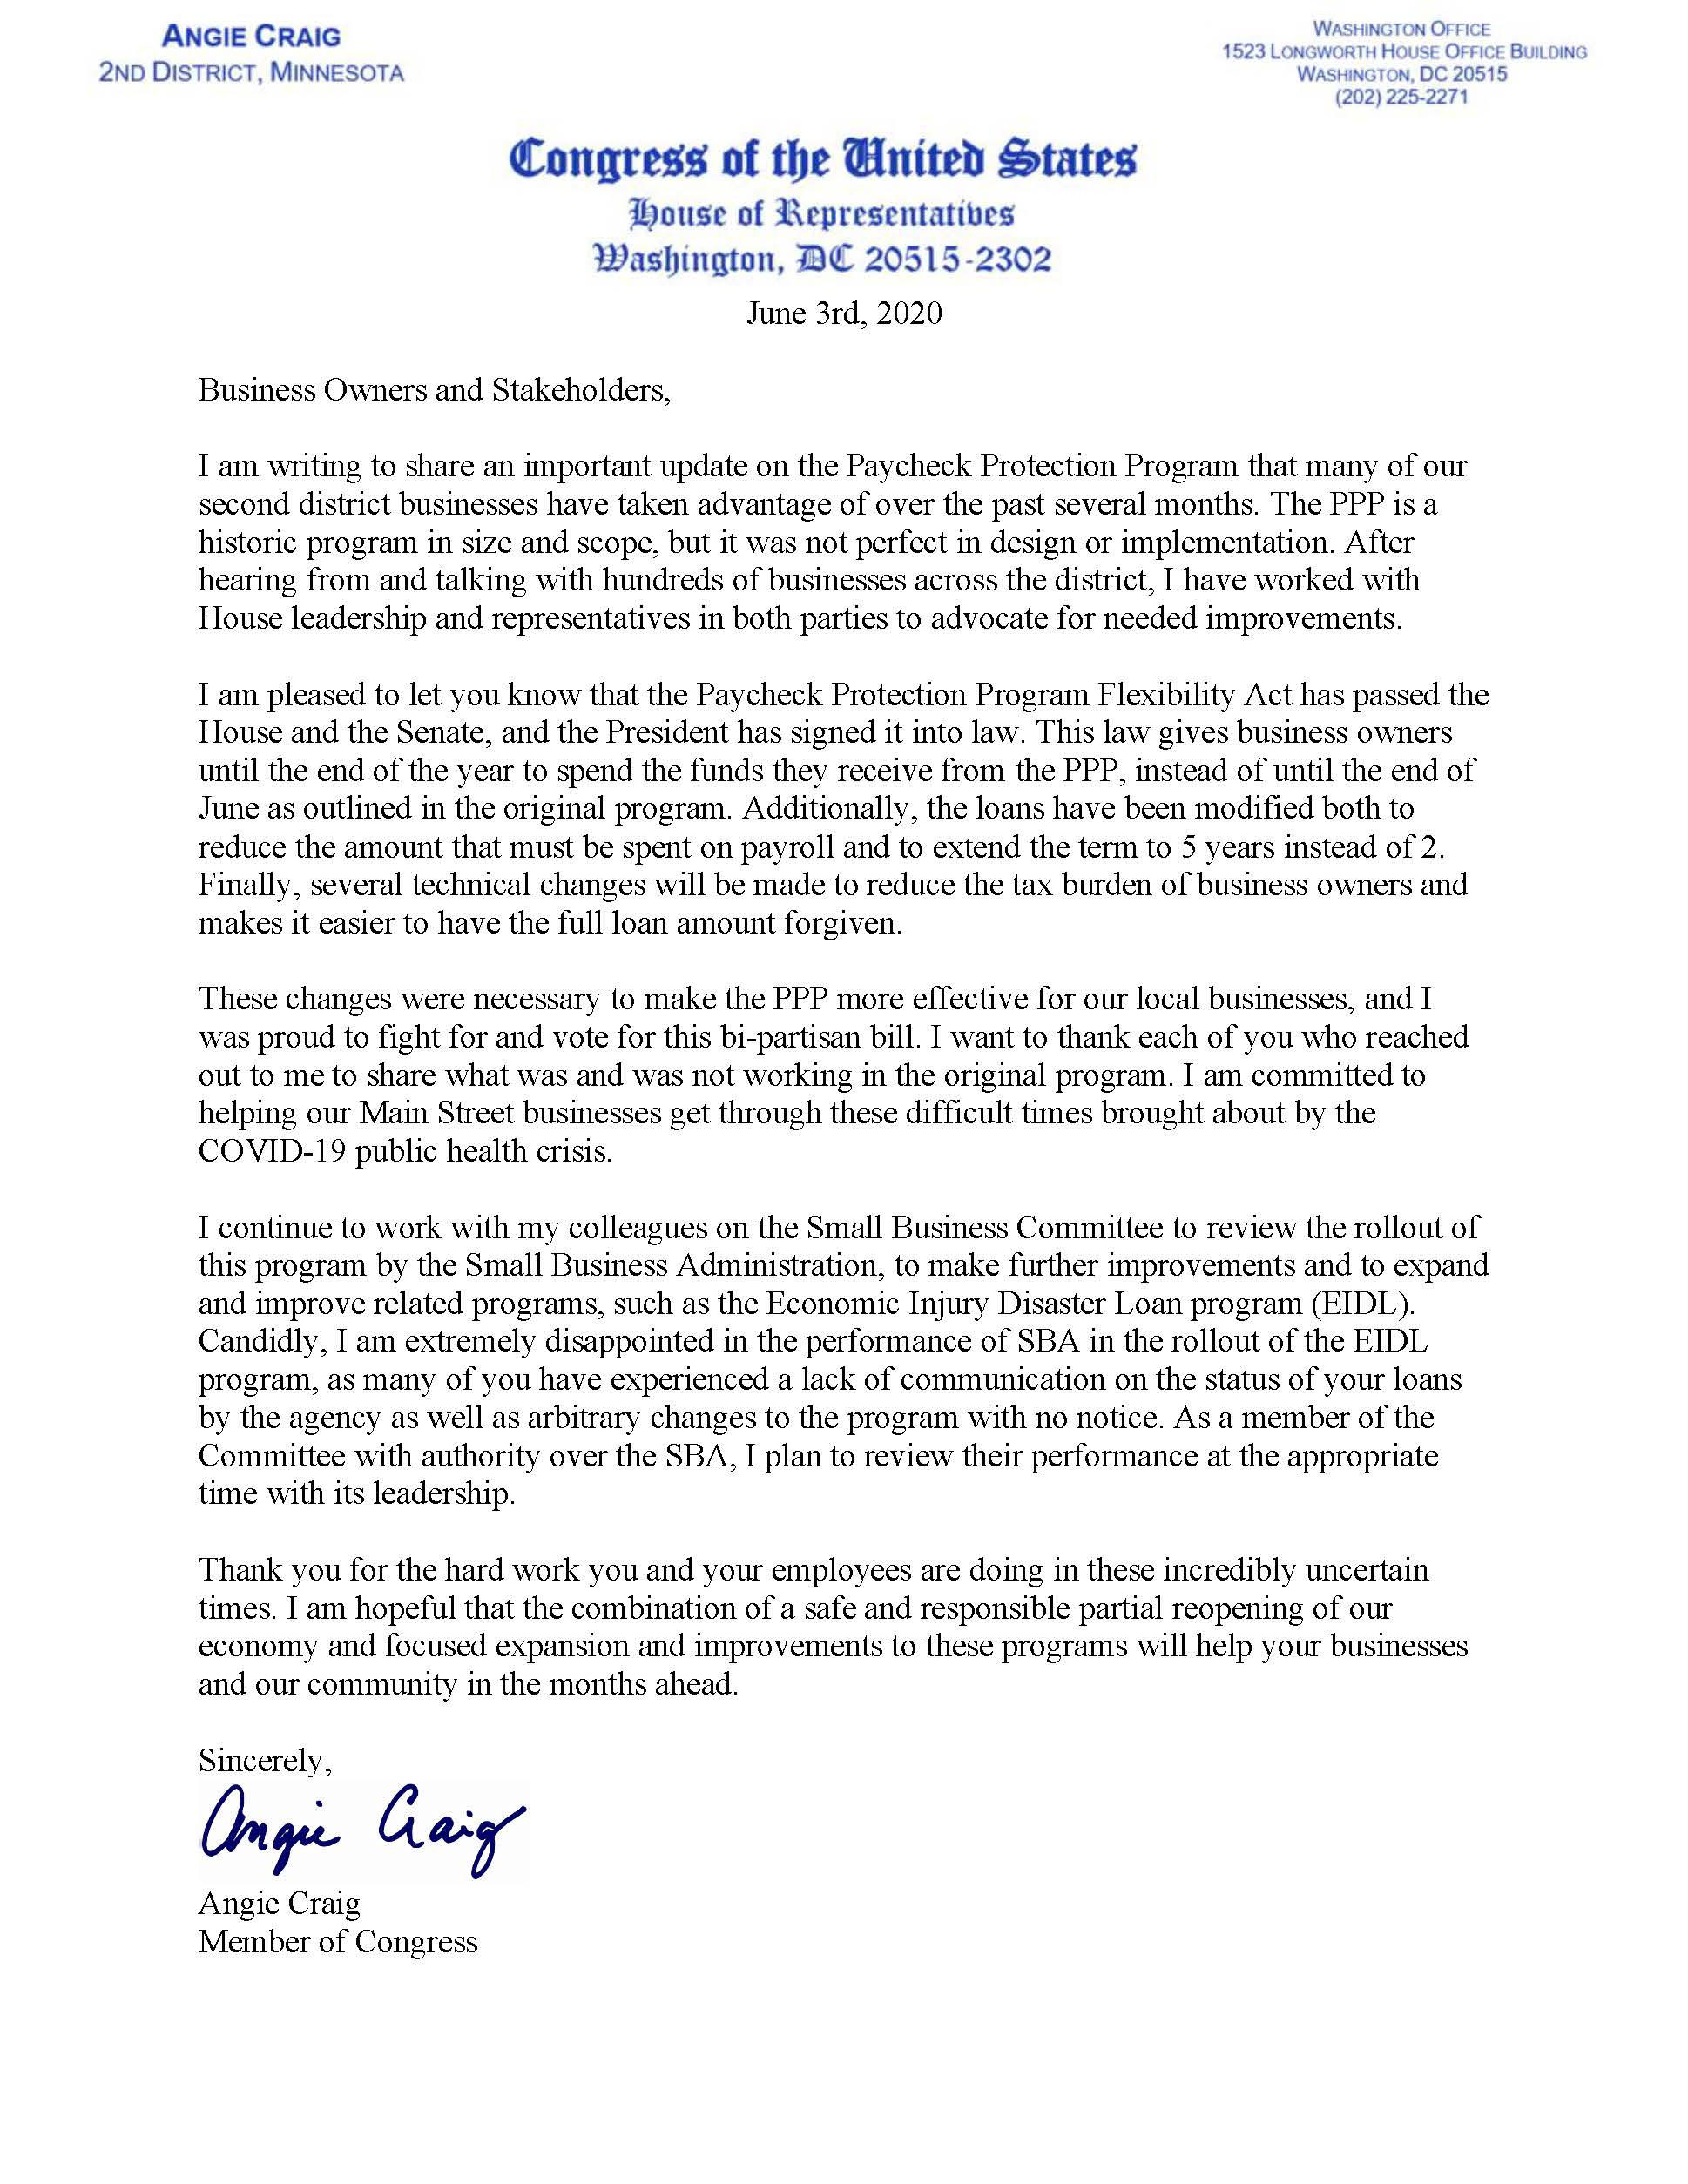 Image of Letter from Congresswoman Craig on Paycheck Protection Program Act